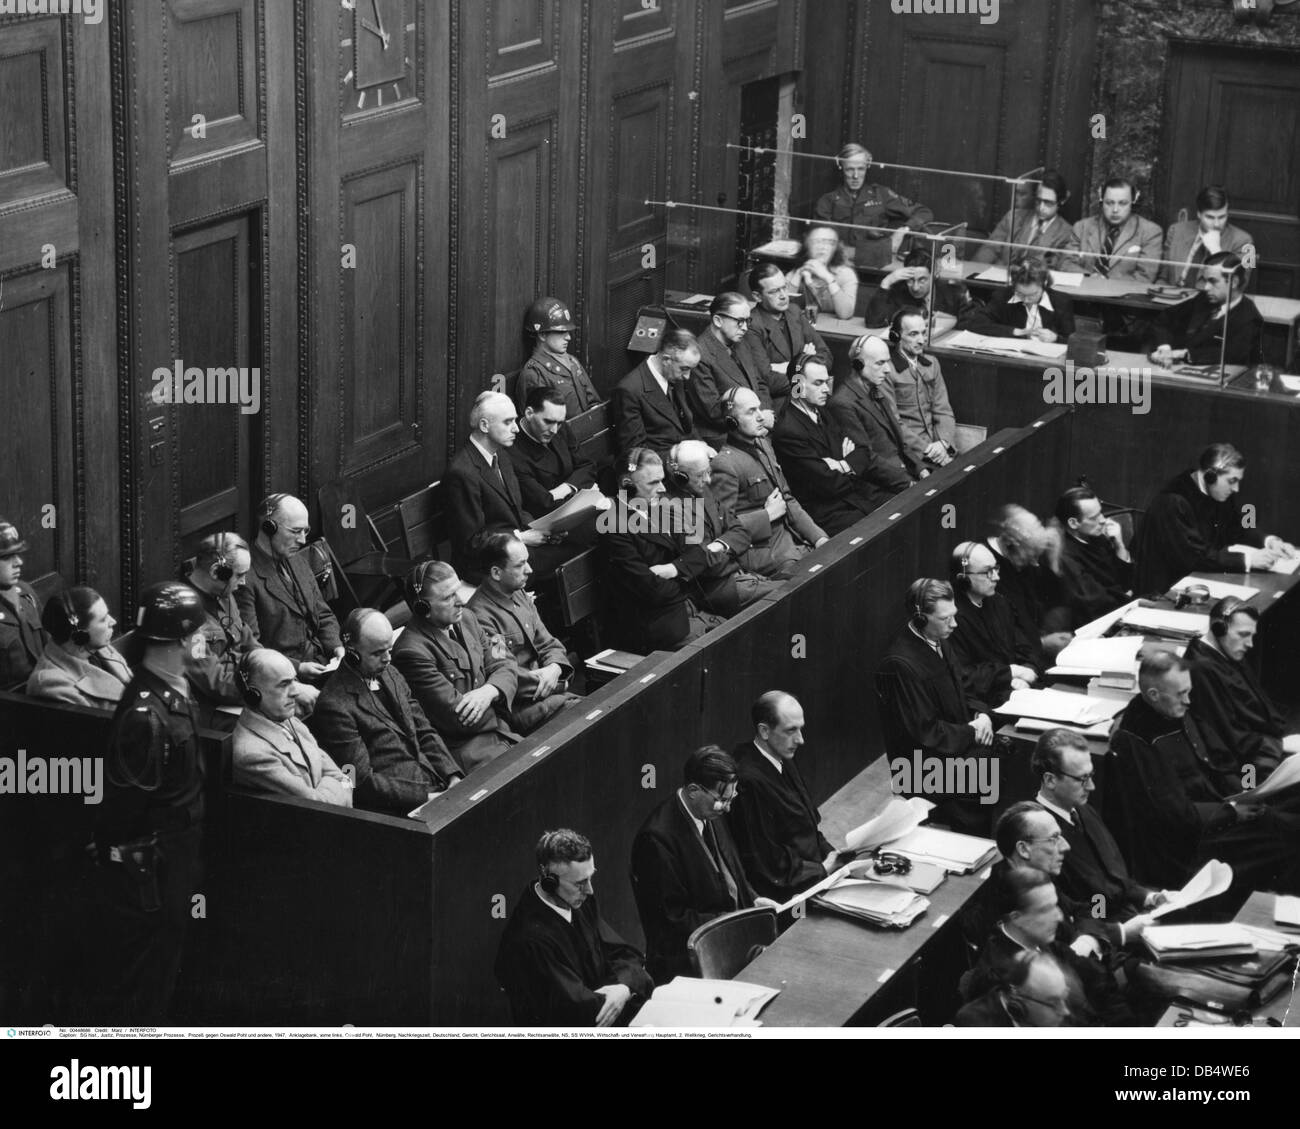 account of the nuremberg trial The nuremberg trials has 562 ratings and 53 reviews + comprehensive account of the nuremberg trial of the 22 prime nazi accused and of 7 nazi-related organizations +++ draws mayerial from the 22 published volumes of the transcripts of the proceedings.